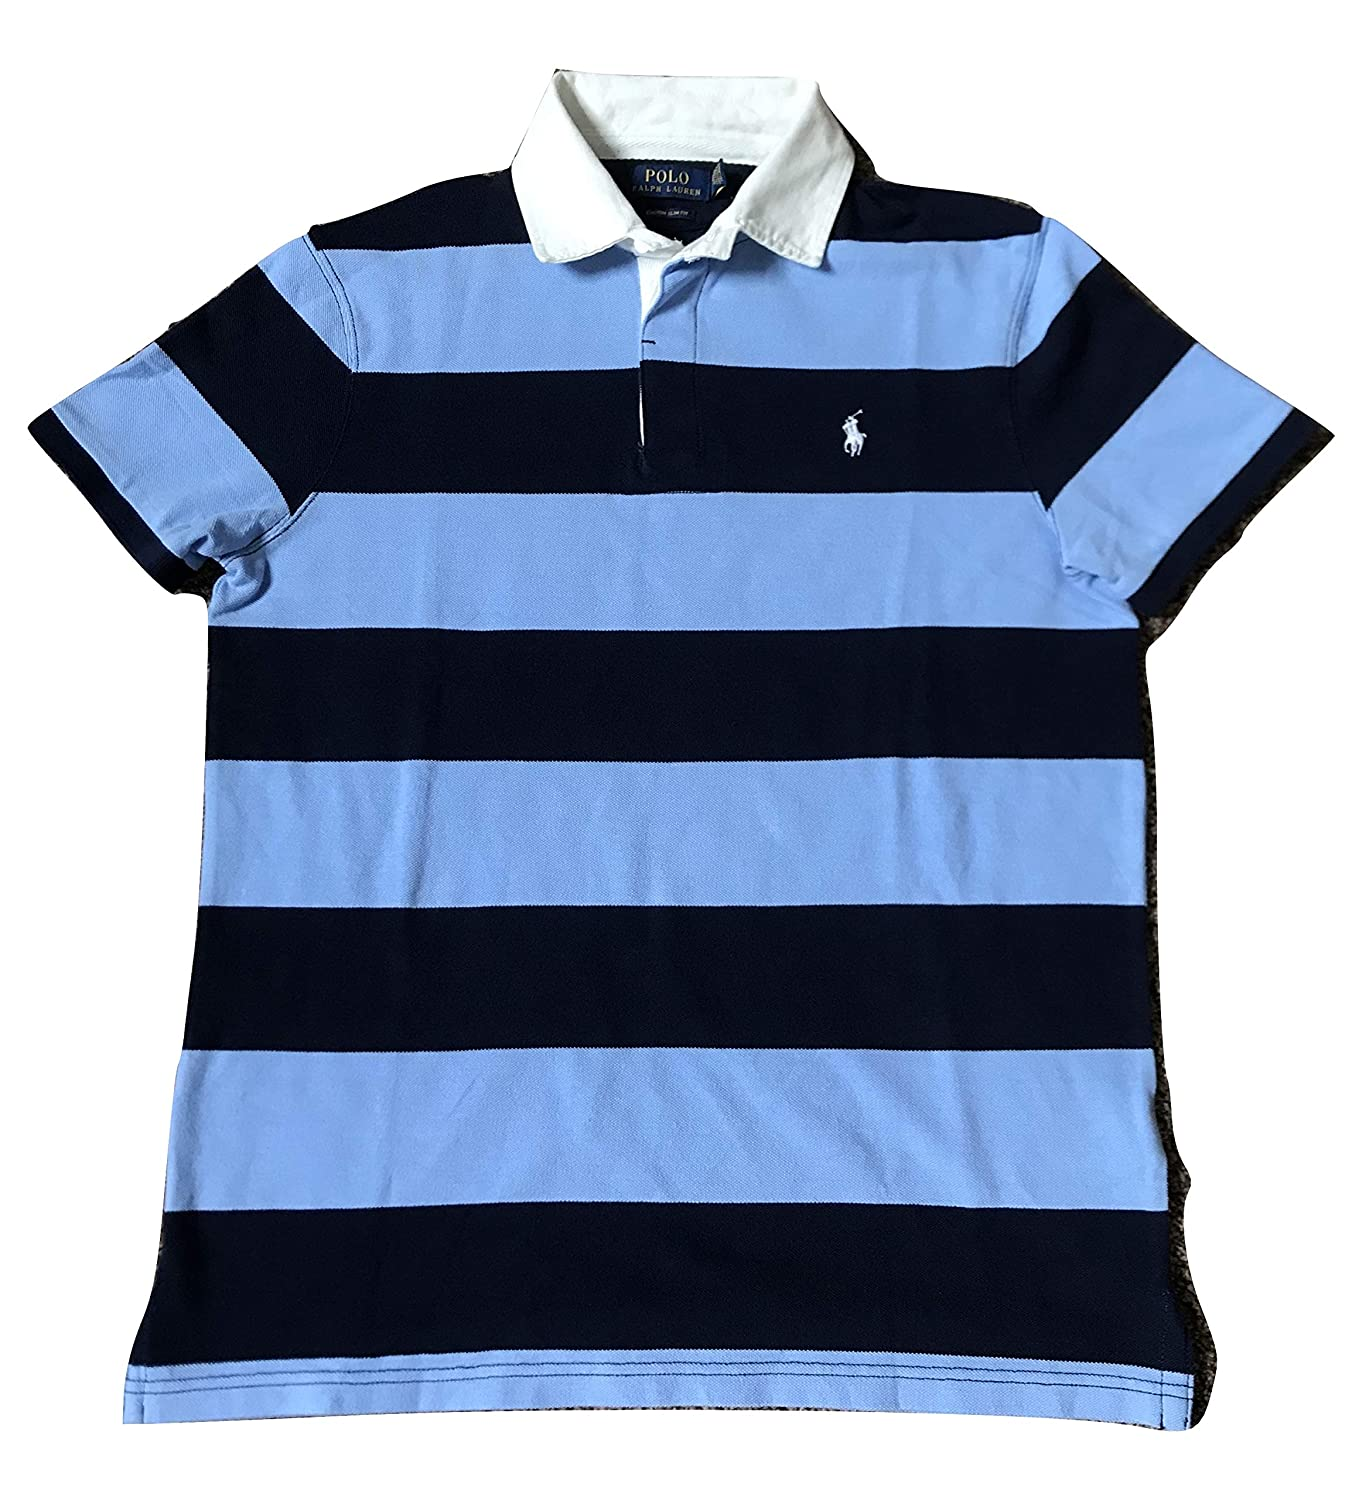 Polo Ralph Lauren Men/'s Short Sleeve Rugby Polo Shirt Slim Fit Striped Polos